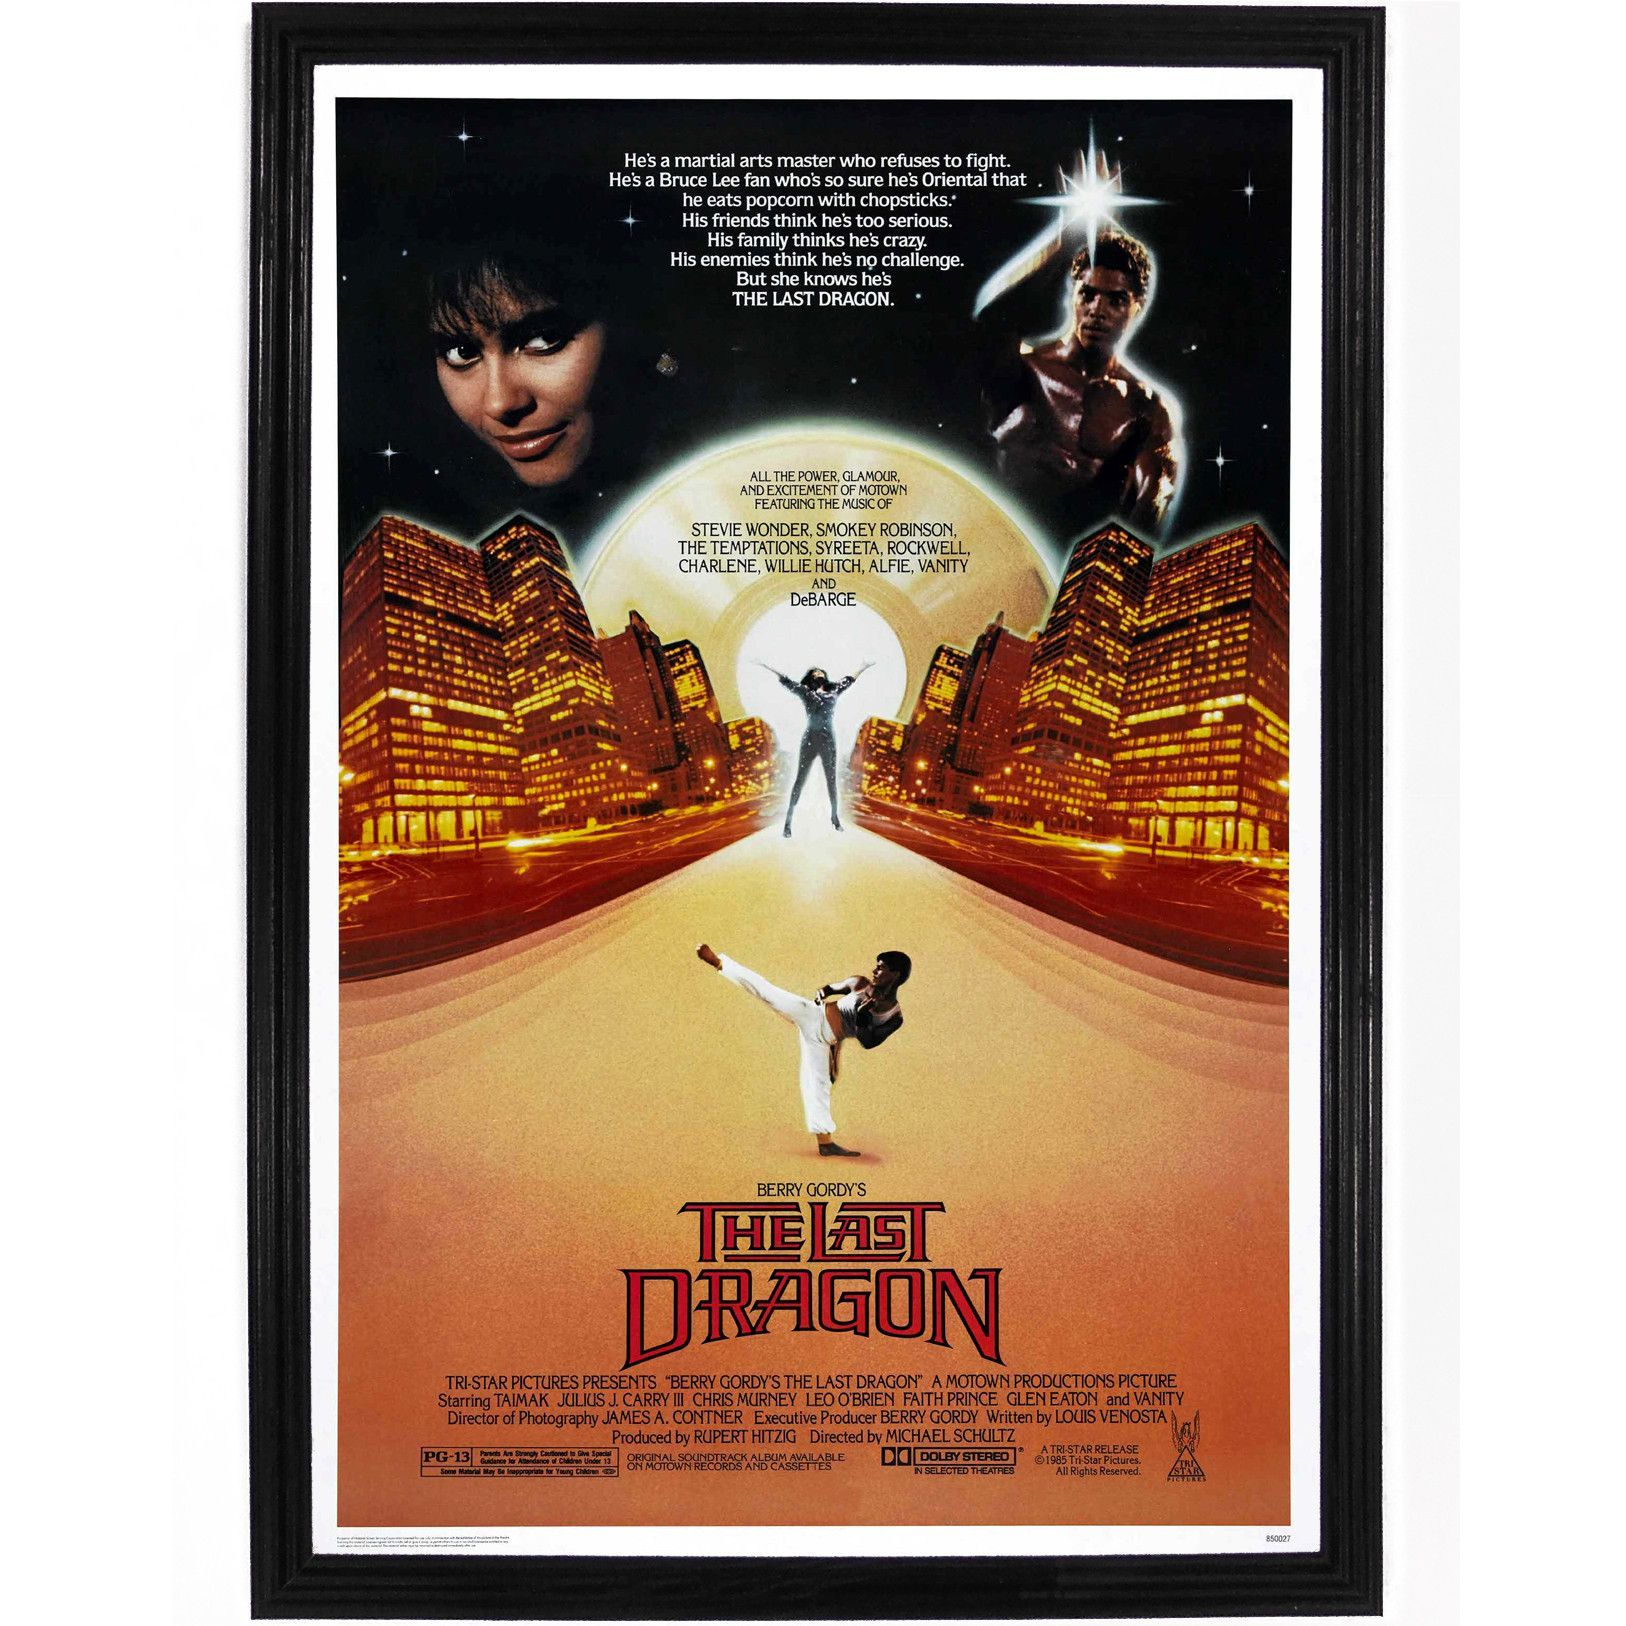 Gordy Movie Cast pertaining to the last dragon movie poster   dragon movies, movie and film posters